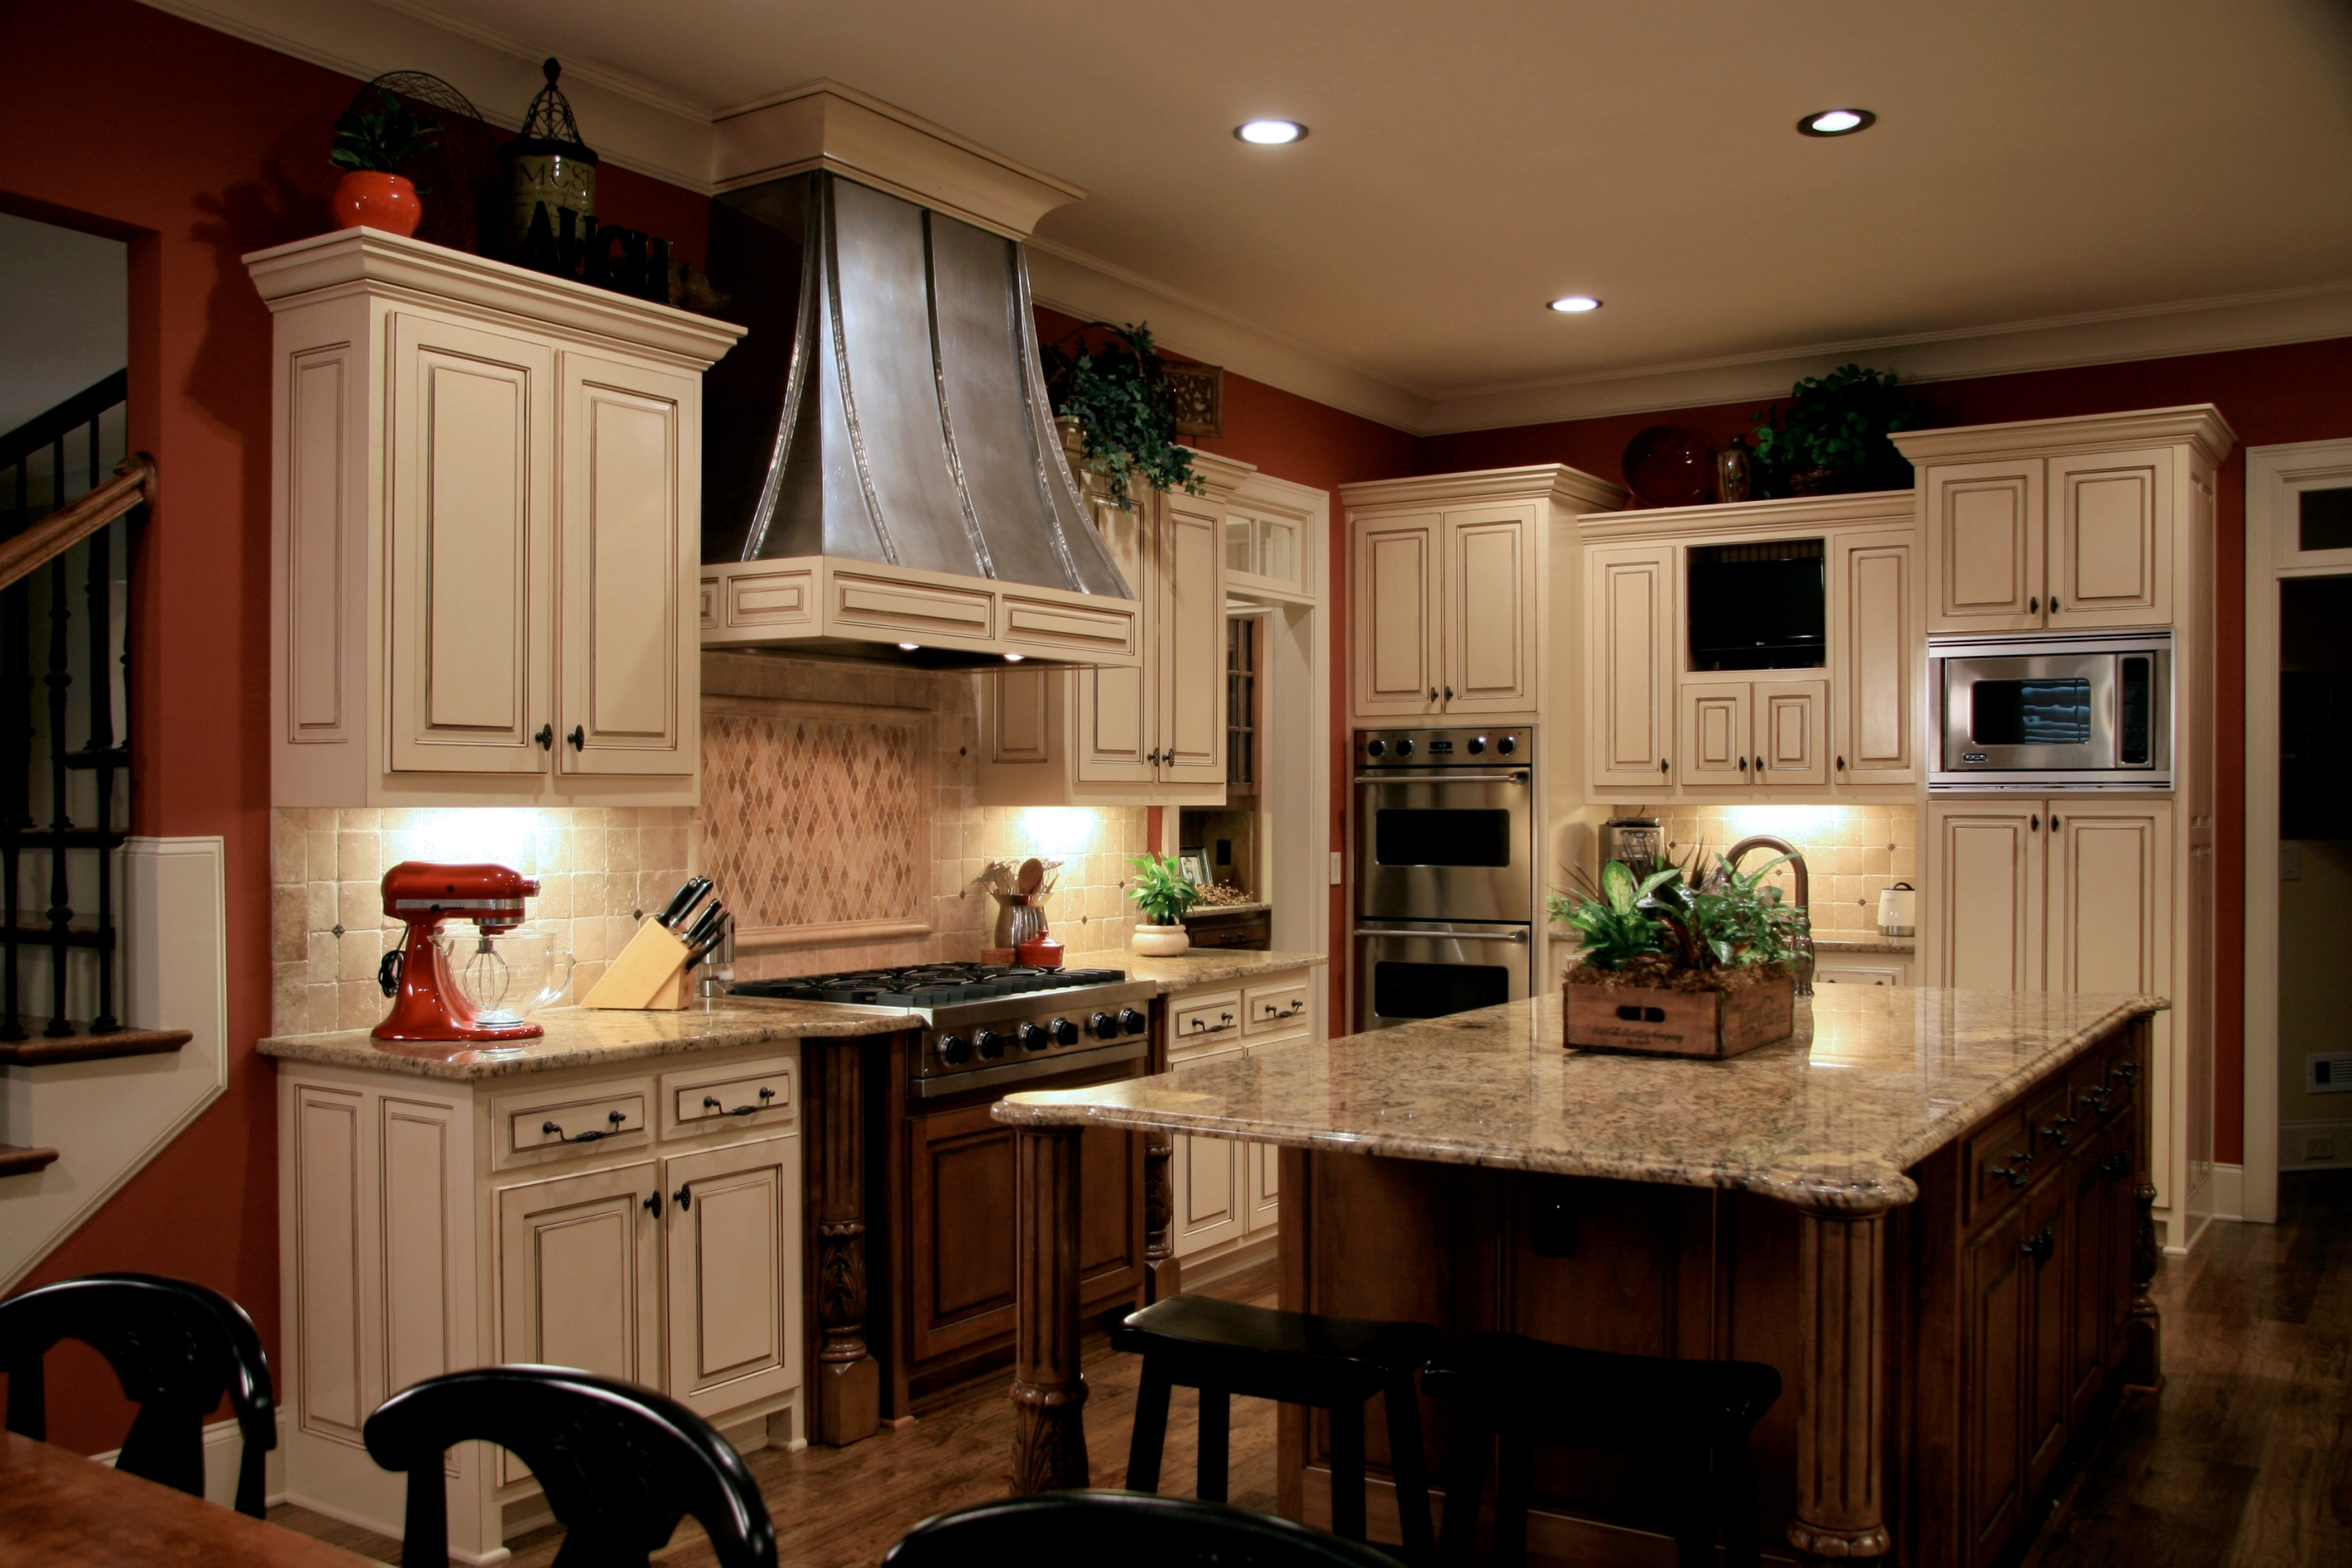 Install Recessed Lighting In A Kitchen